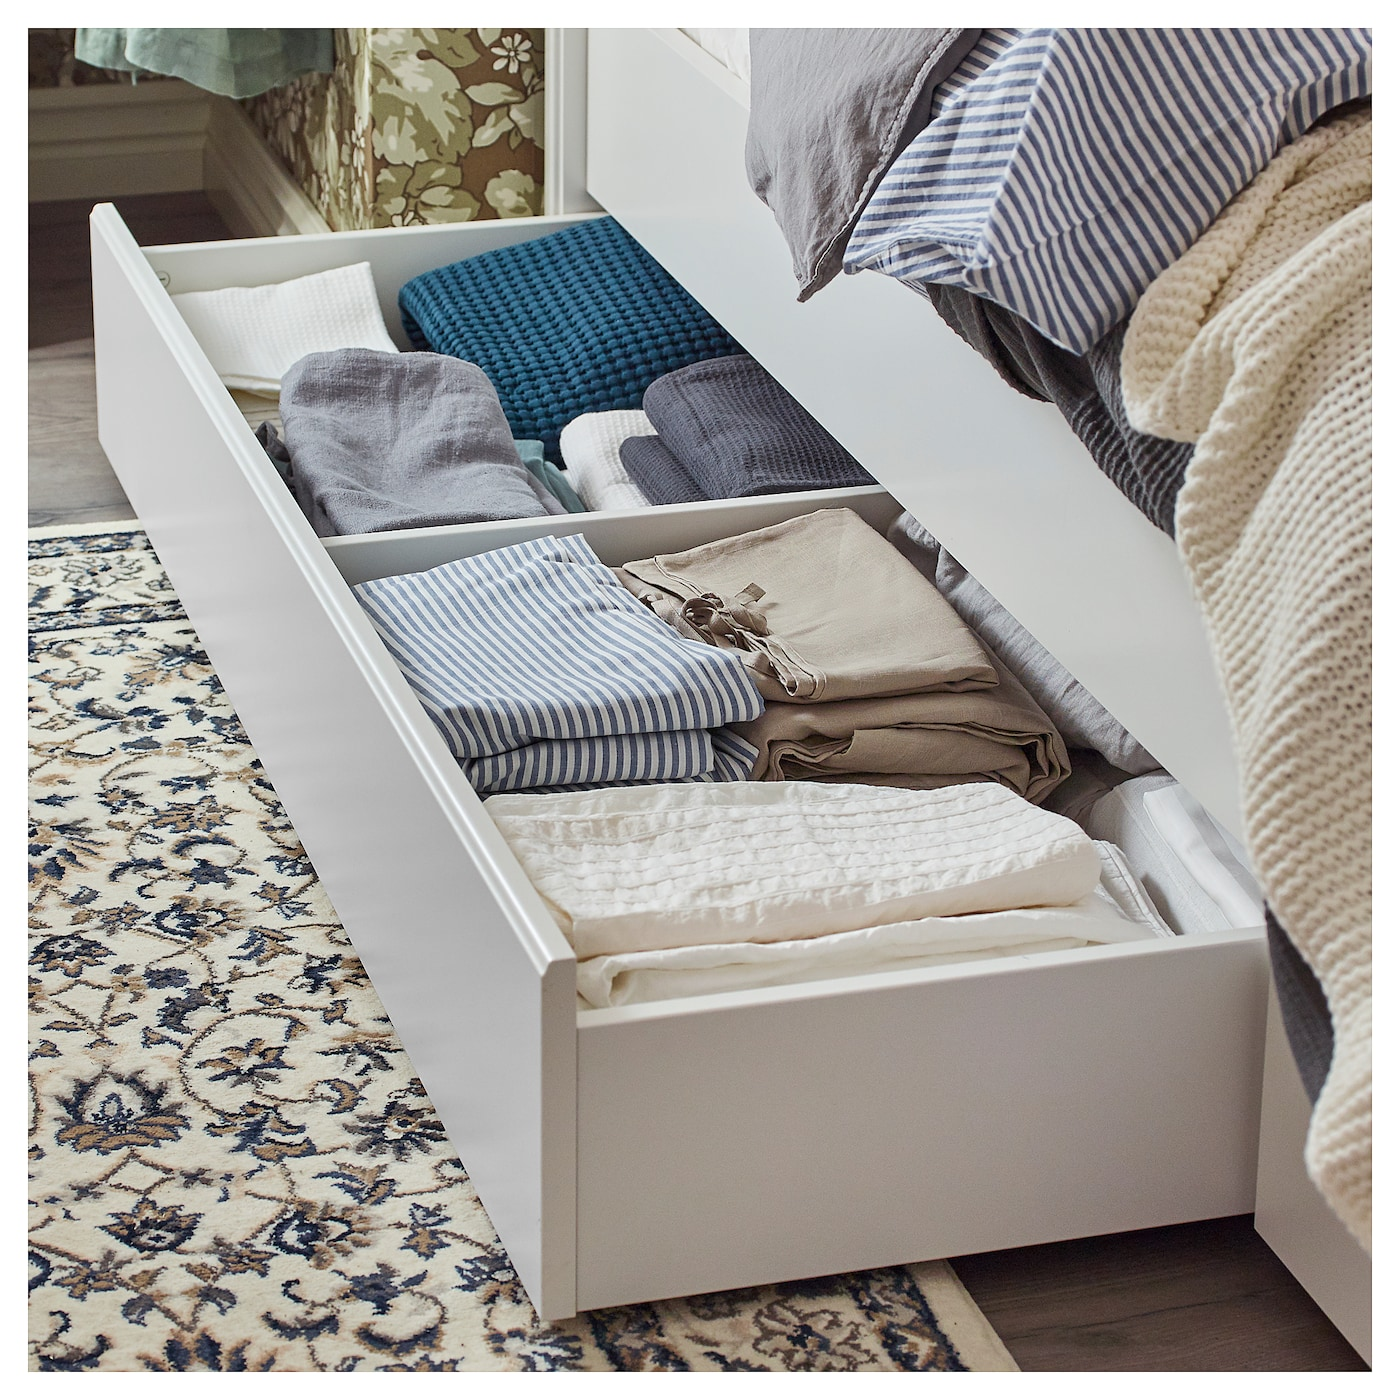 SONGESAND Bed frame with 2 storage boxes White luröy Standard Double